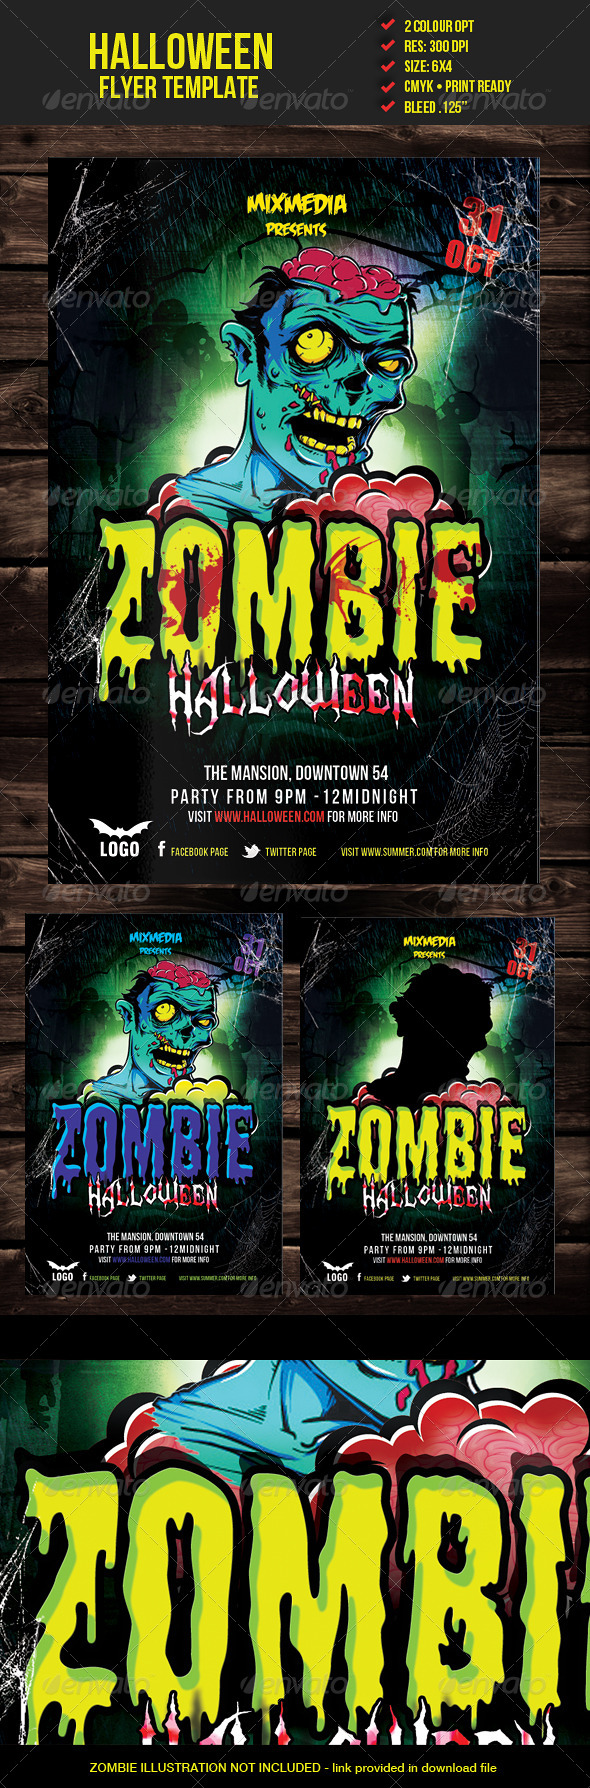 Zombie Halloween Flyer Template - Events Flyers